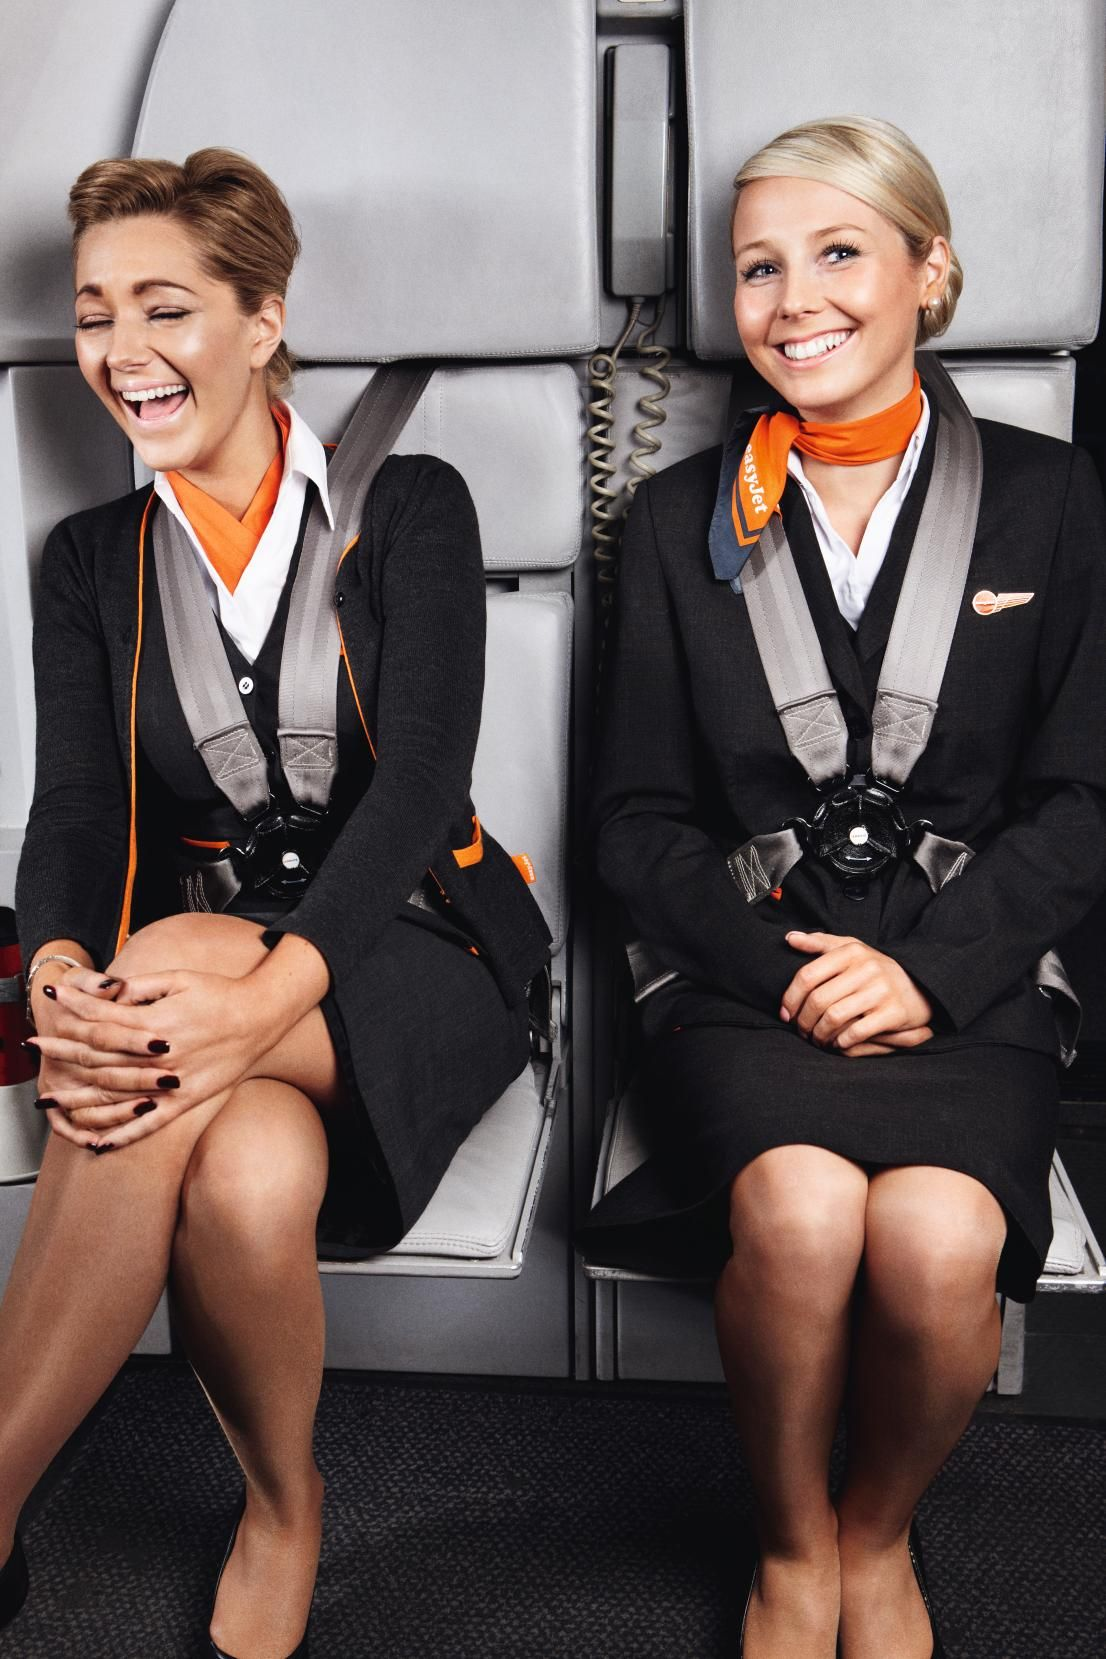 Airline Milf easyjet : smiling on board | flight attendant life, airline